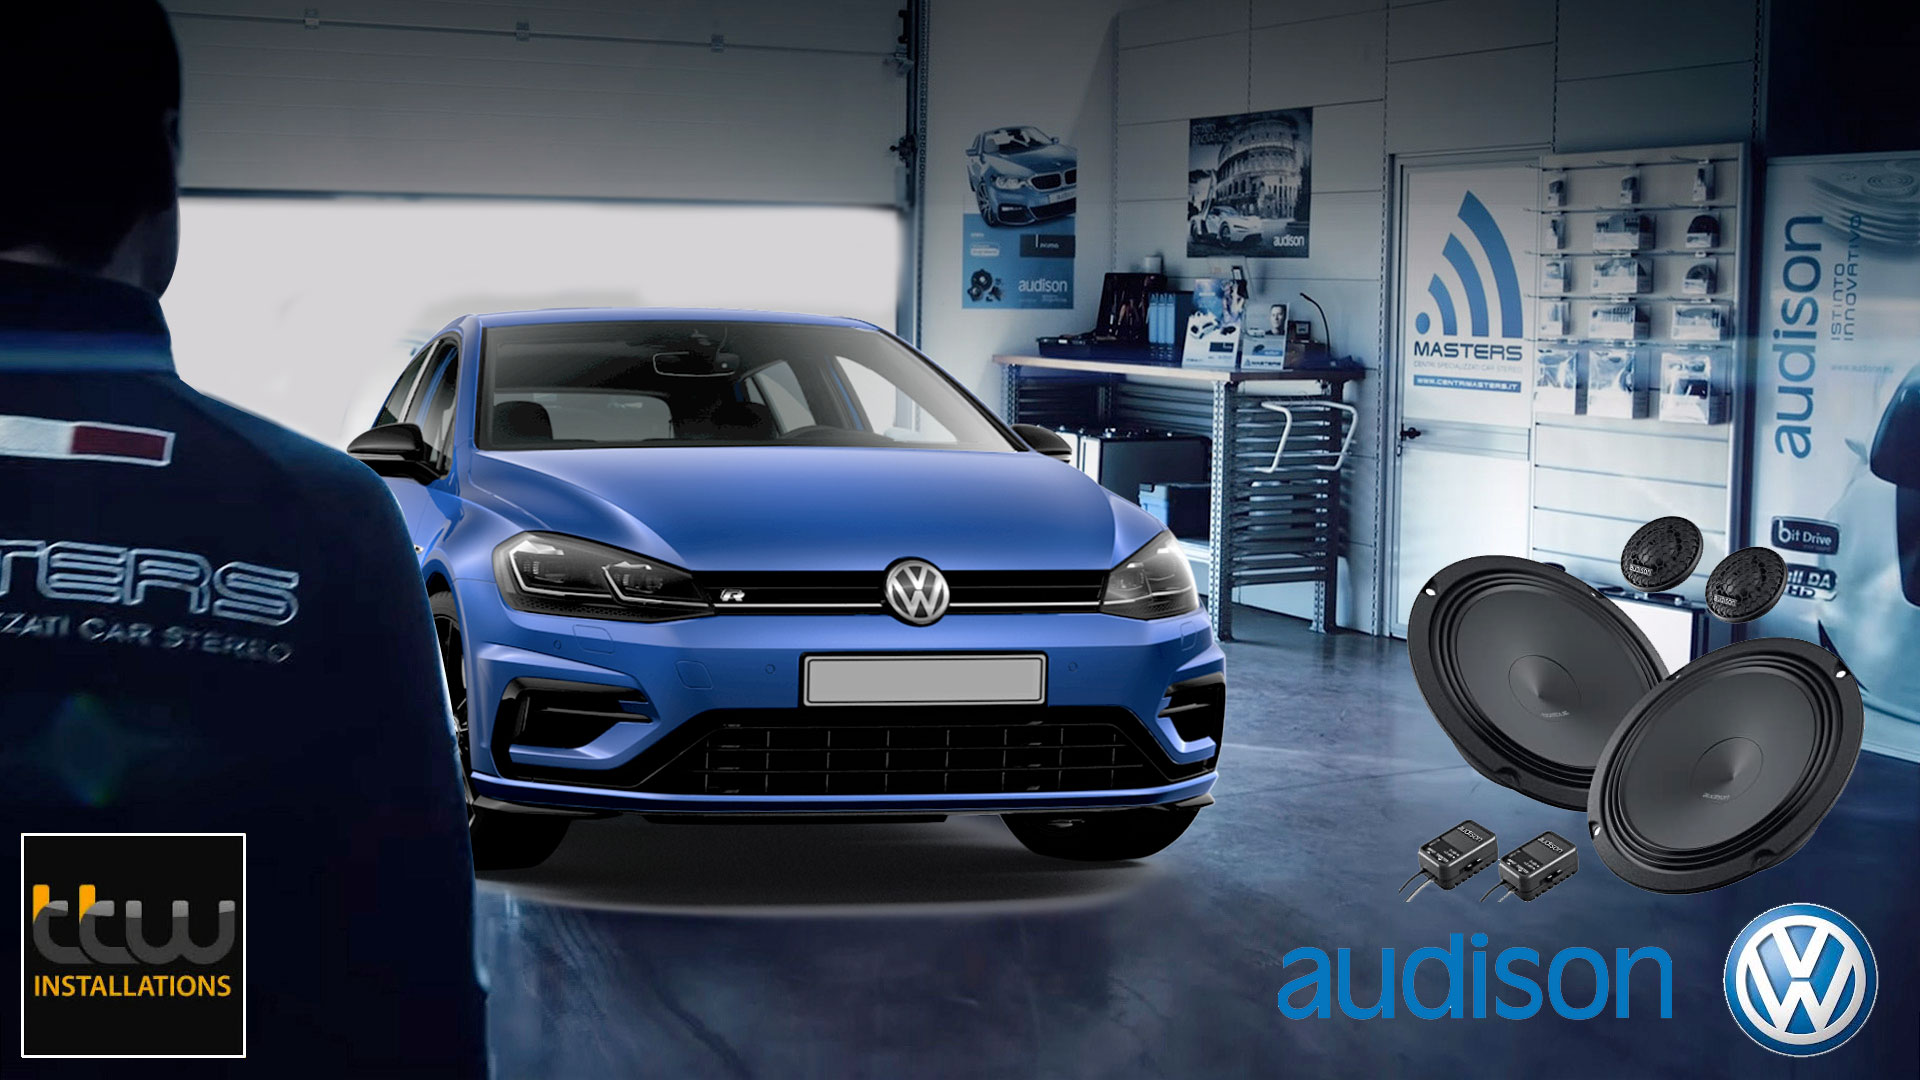 VW Audison Car Audio Upgrades